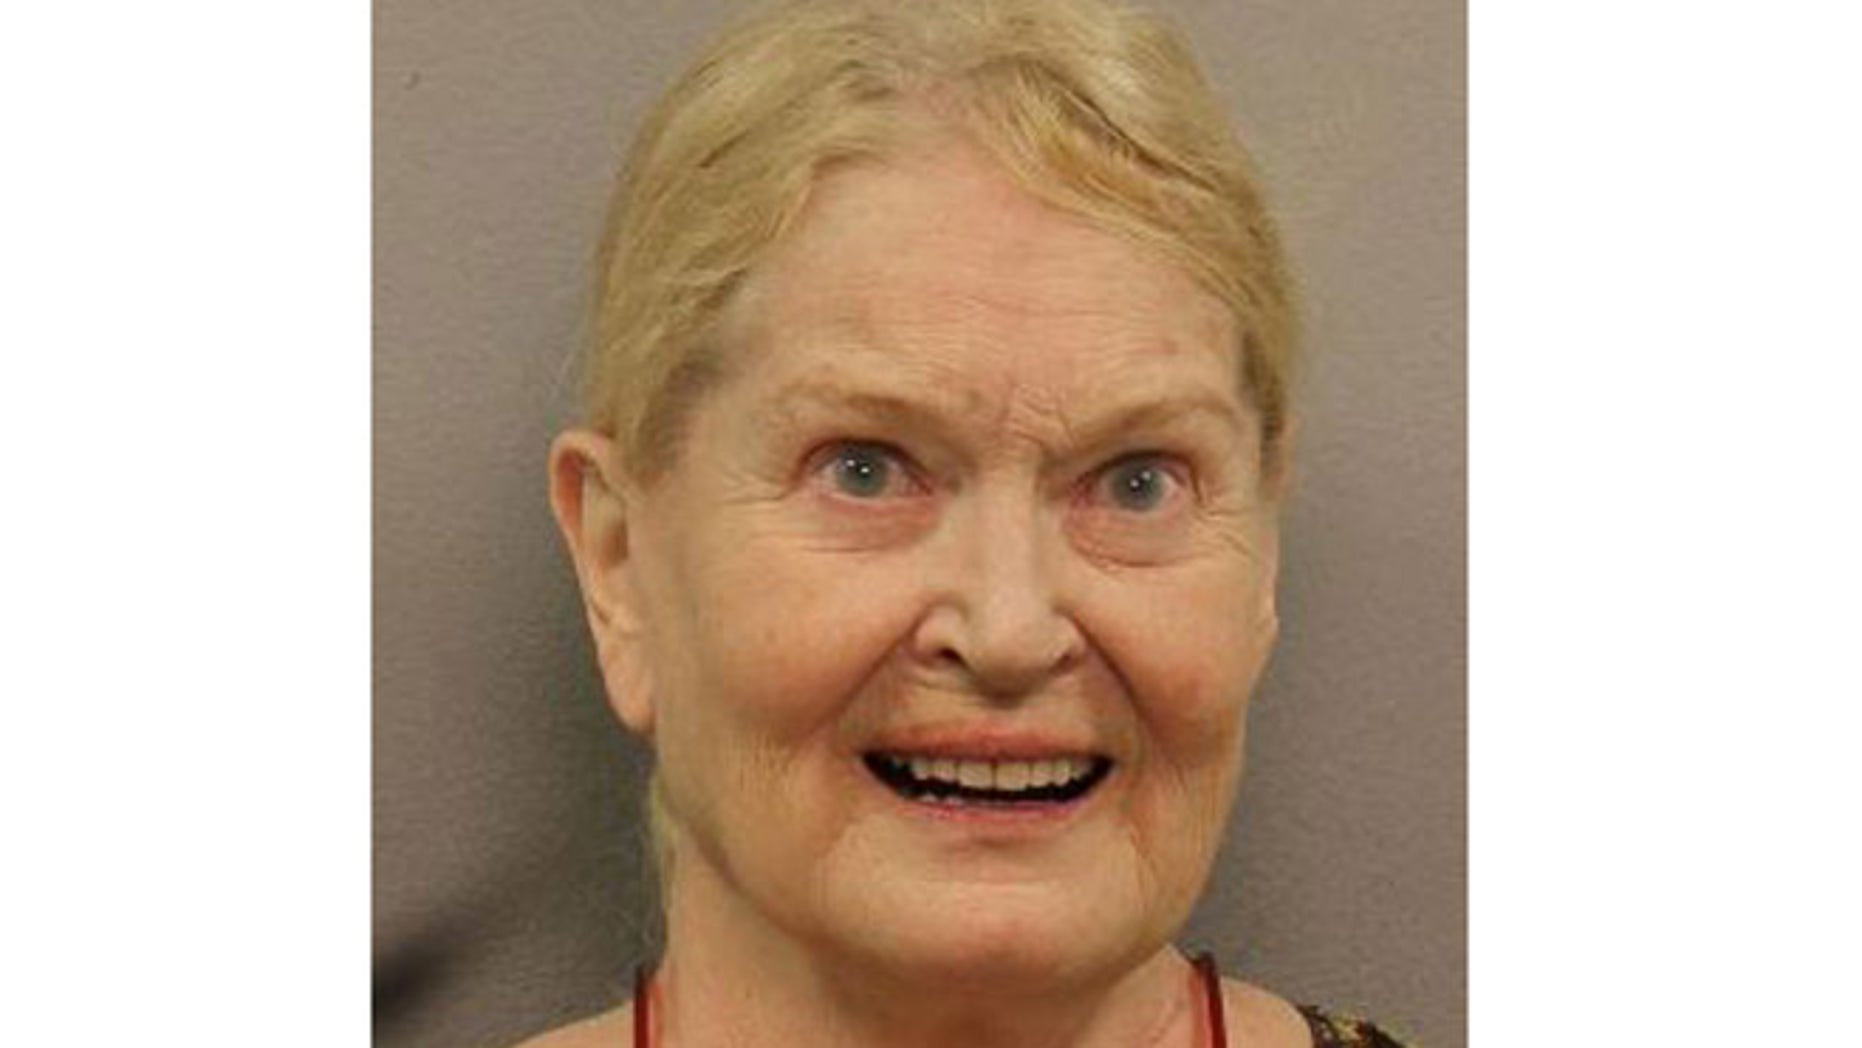 Lynn Anderson is pictured in this undated booking photo courtesy of Metropolitan Nashville Police Department. (Reuters/Metropolitan Nashville Police Department/Handout)